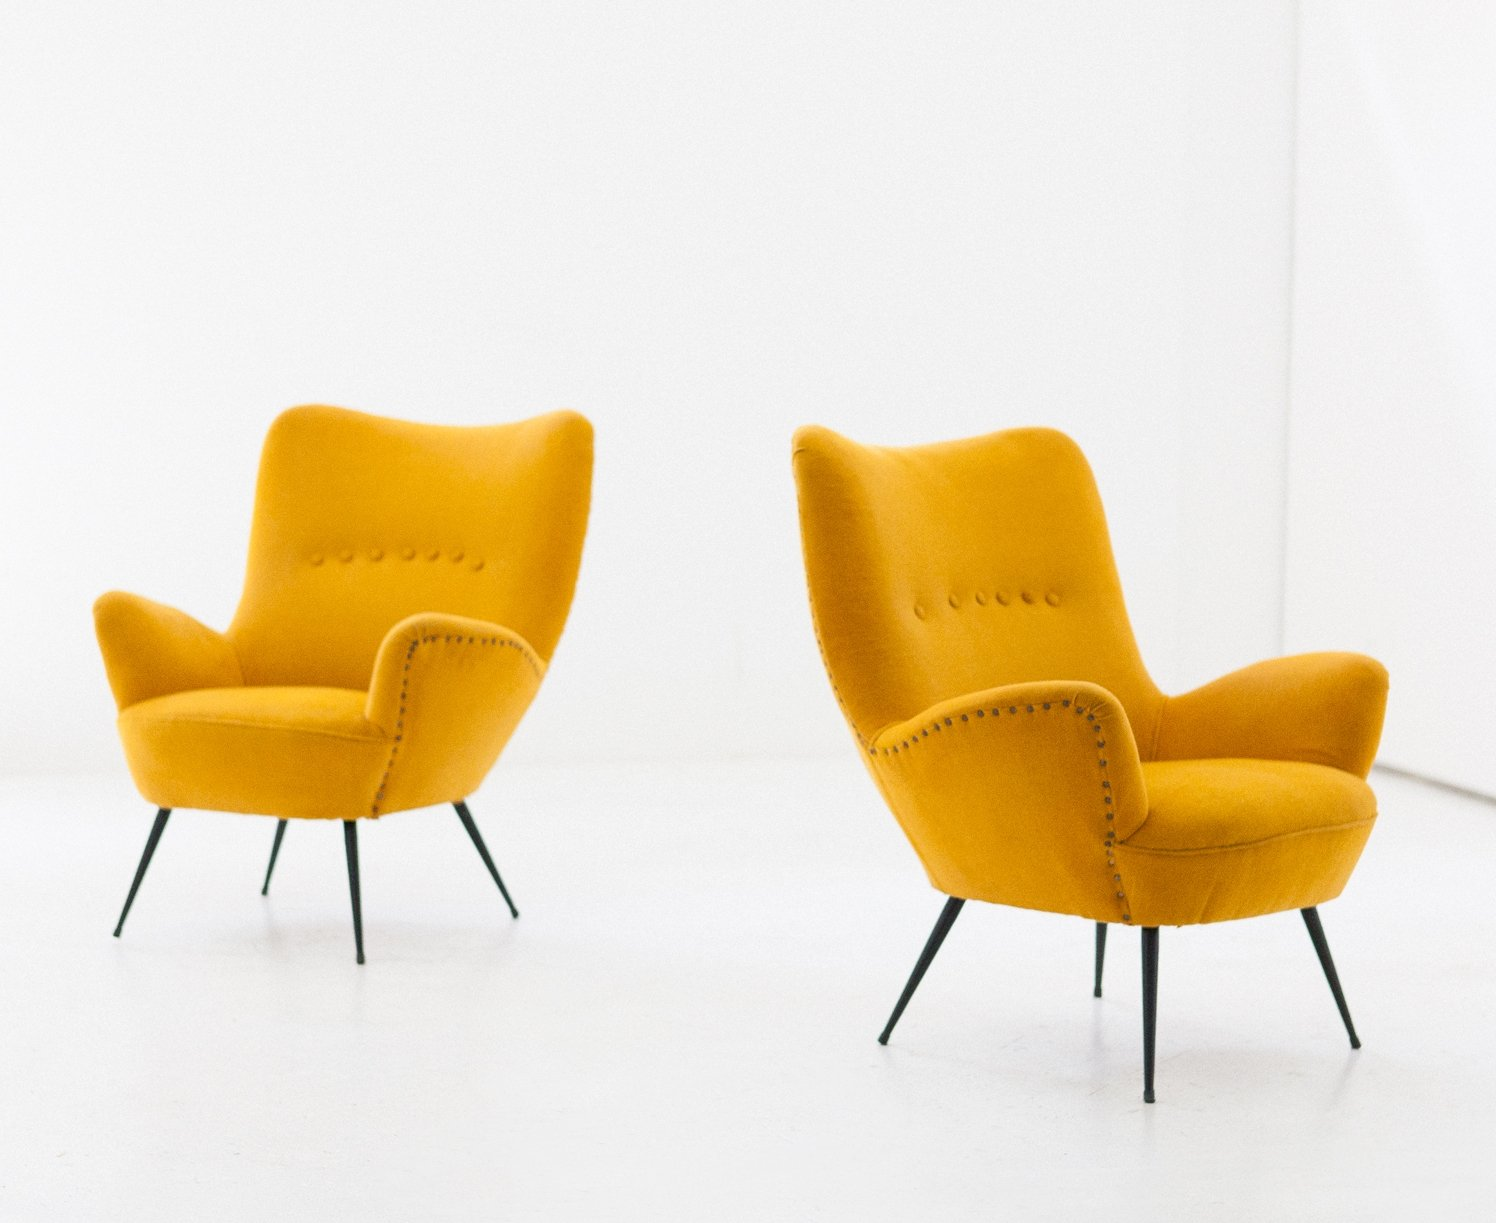 Pair Of Italian High Back Yellow Lounge Chairs 1950s 80395